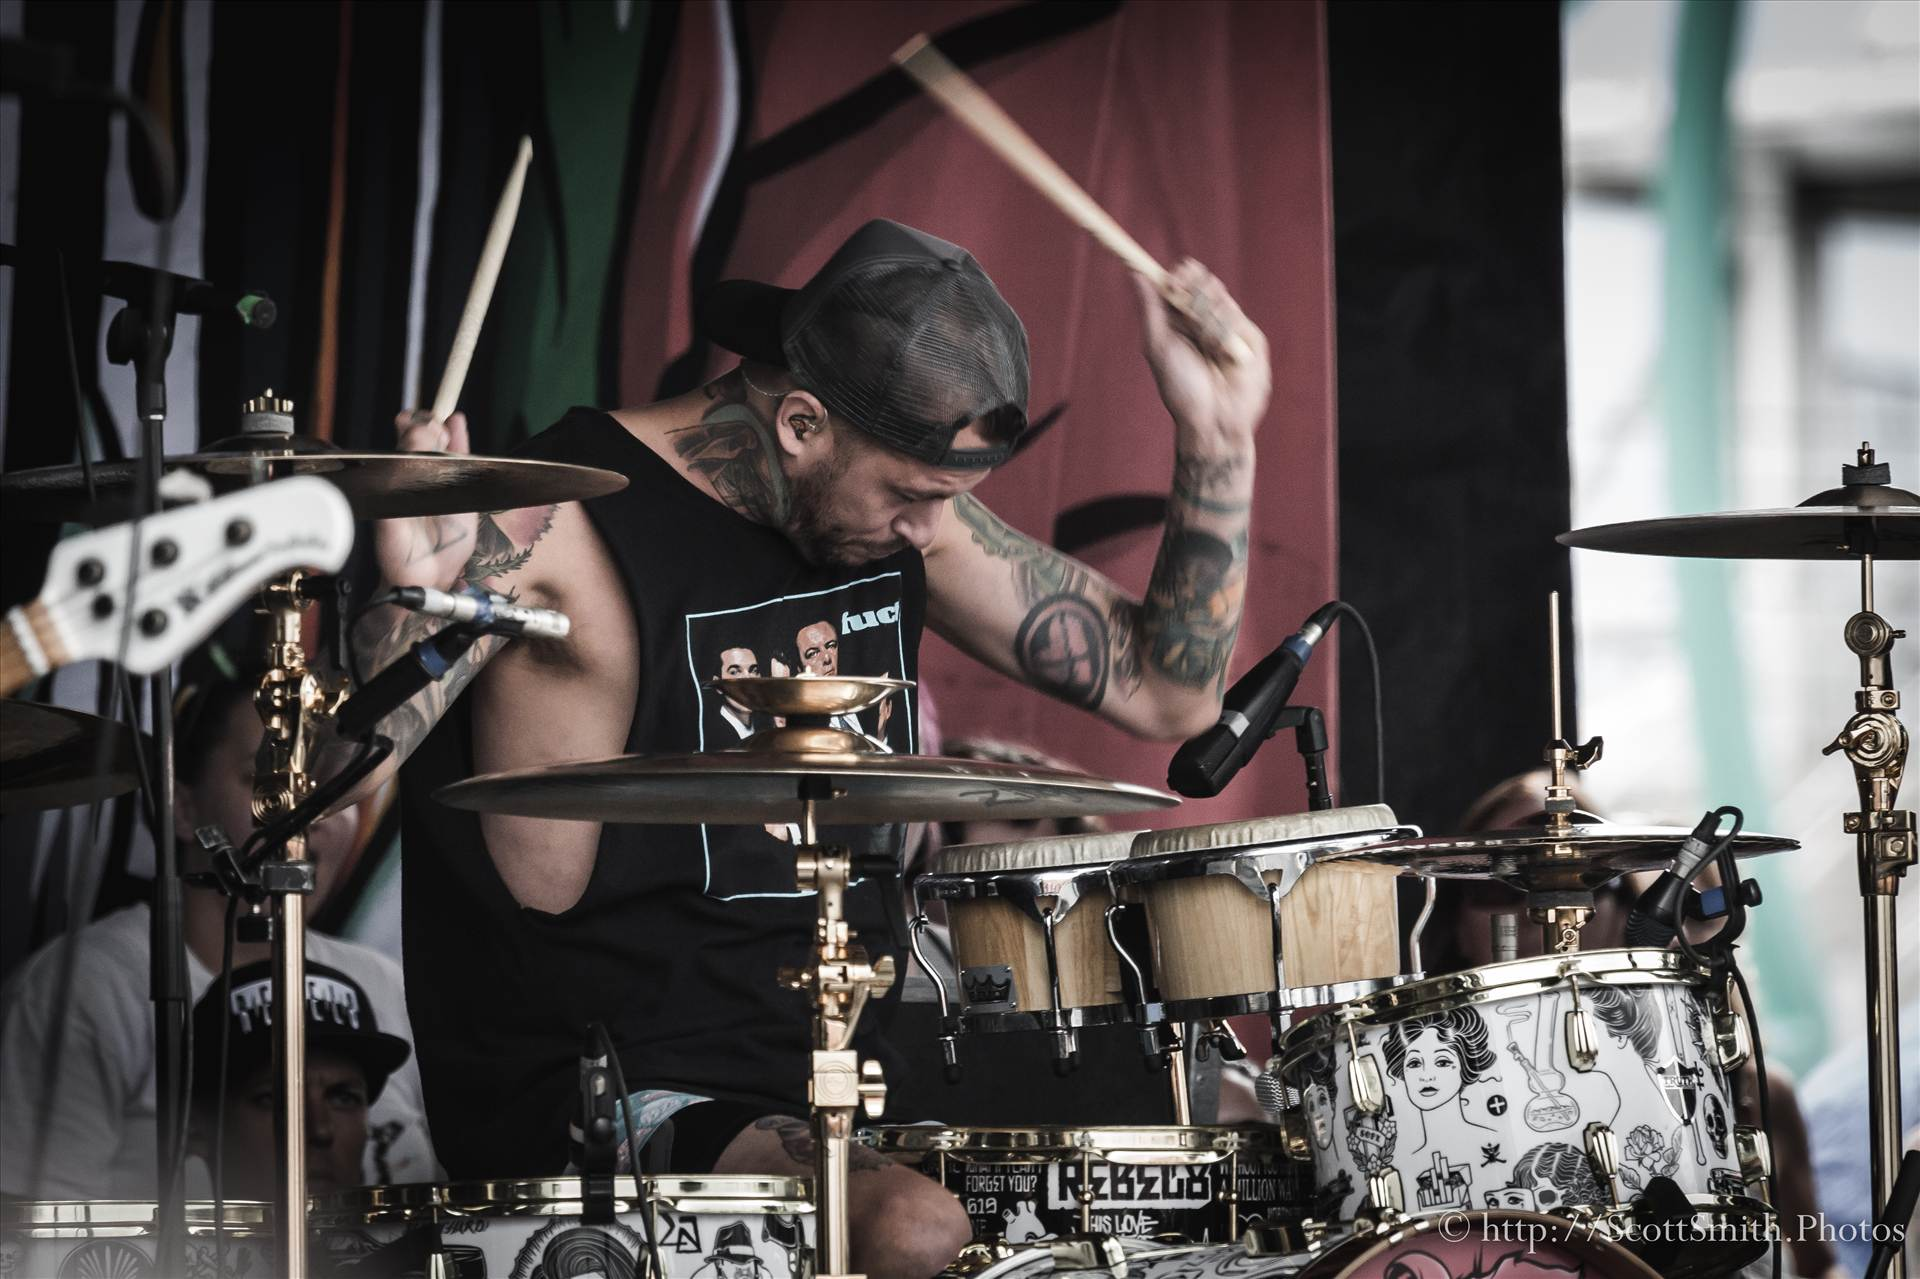 Denver Warped Tour 2015 17 -  by Scott Smith Photos